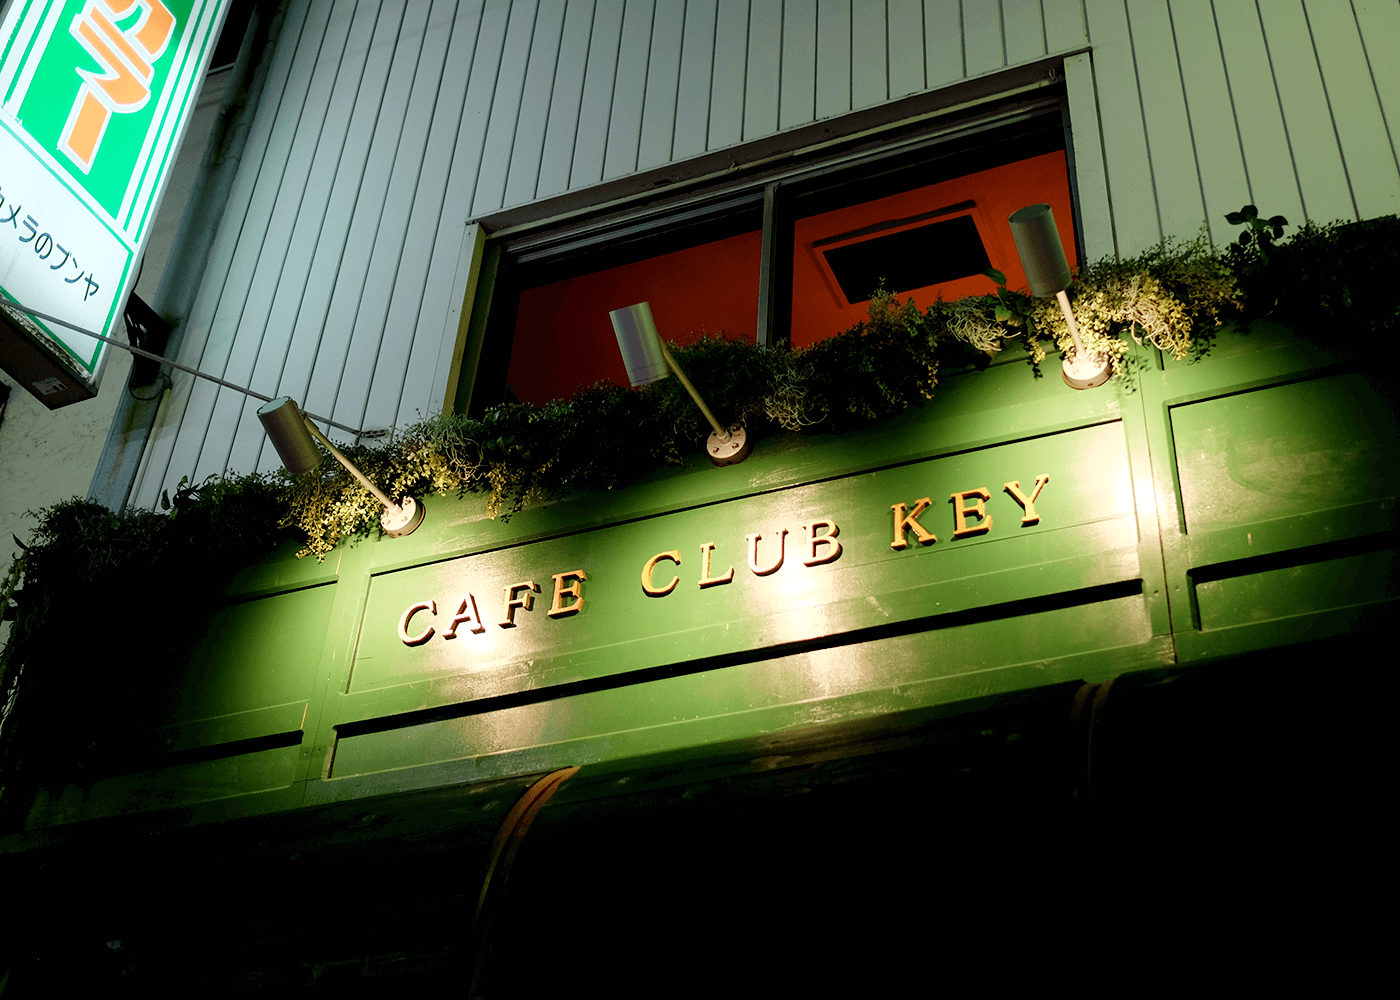 Cafe CLUB KEY 鹿島田店(カフェ クラブ キー カシマダテン)